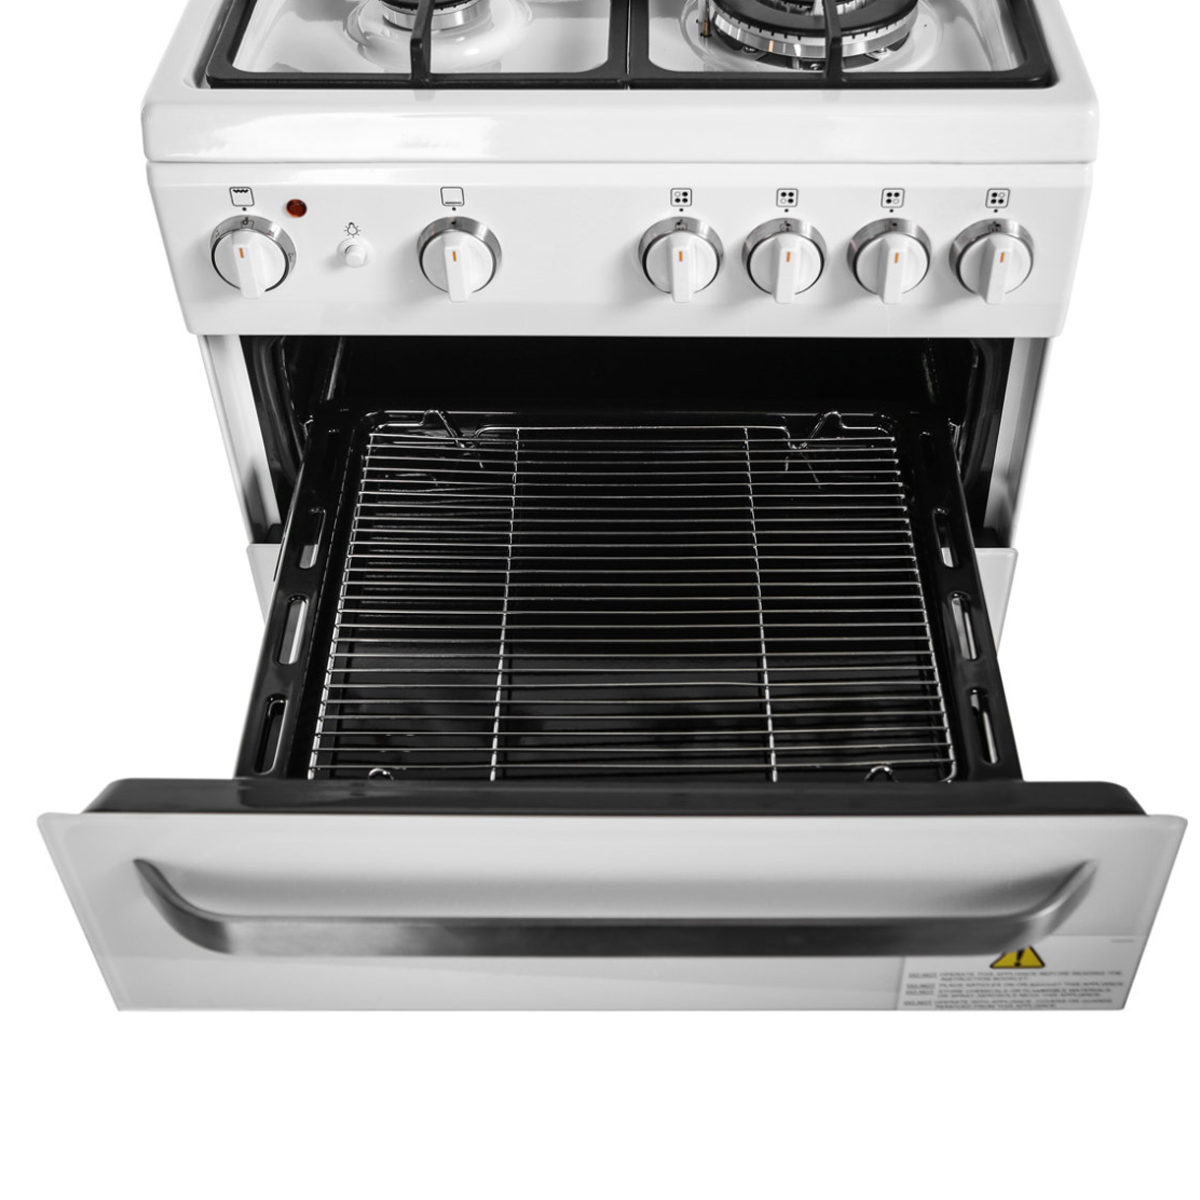 Haier HOR54B5MGW1 54cm Freestanding Natural Gas Oven/Stove 46917